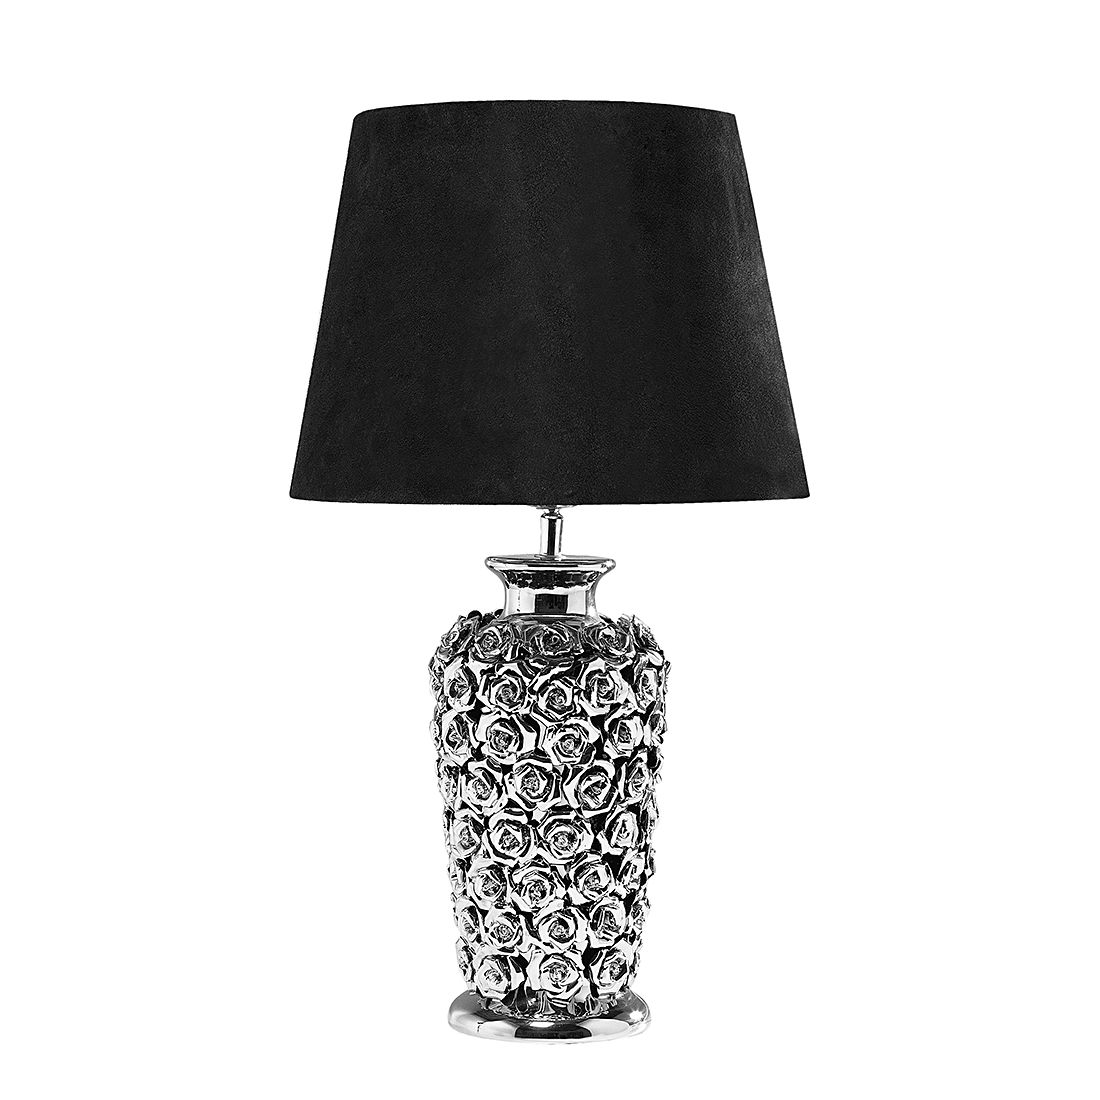 EEK A++, Lampe de table TL Rose Multi - Pierre / Tissu 1 ampoule, Kare Design